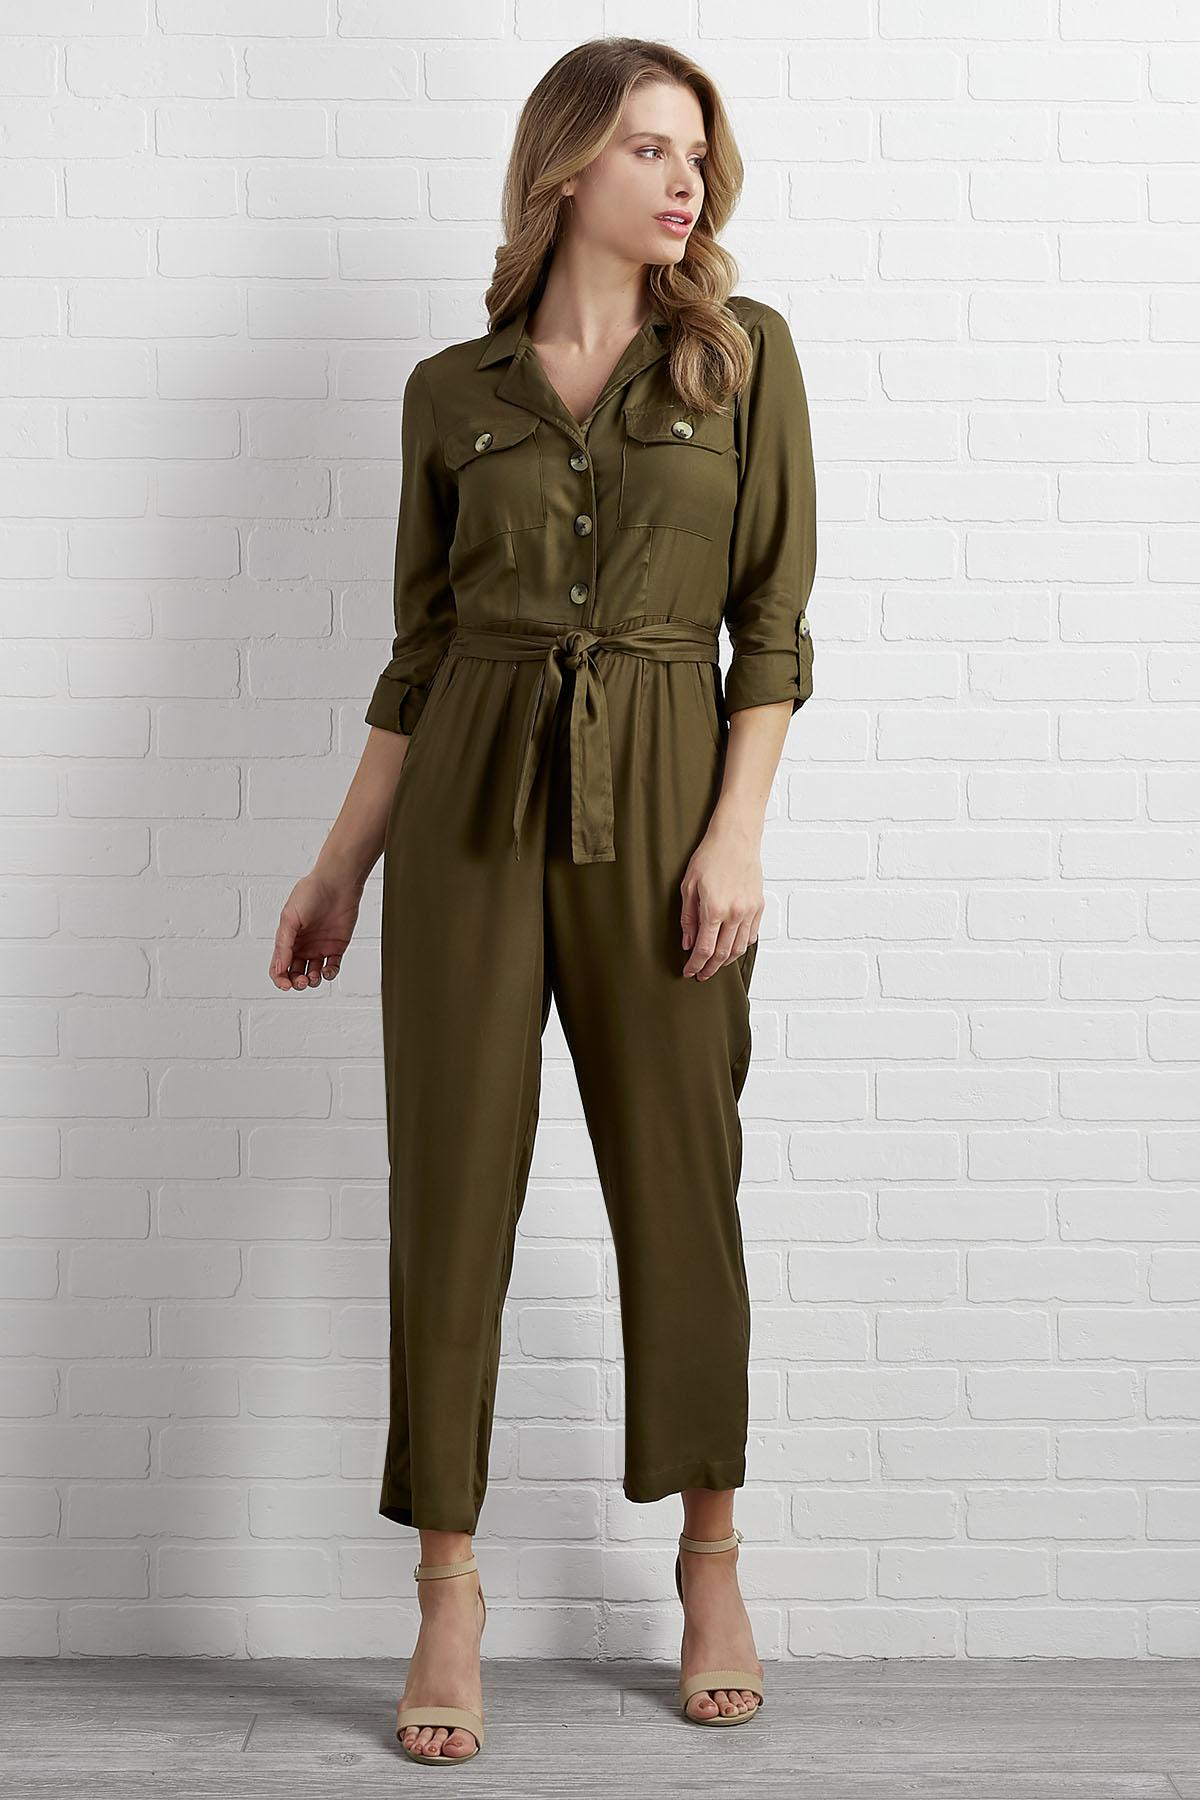 Down- To- Earth Utility Jumpsuit